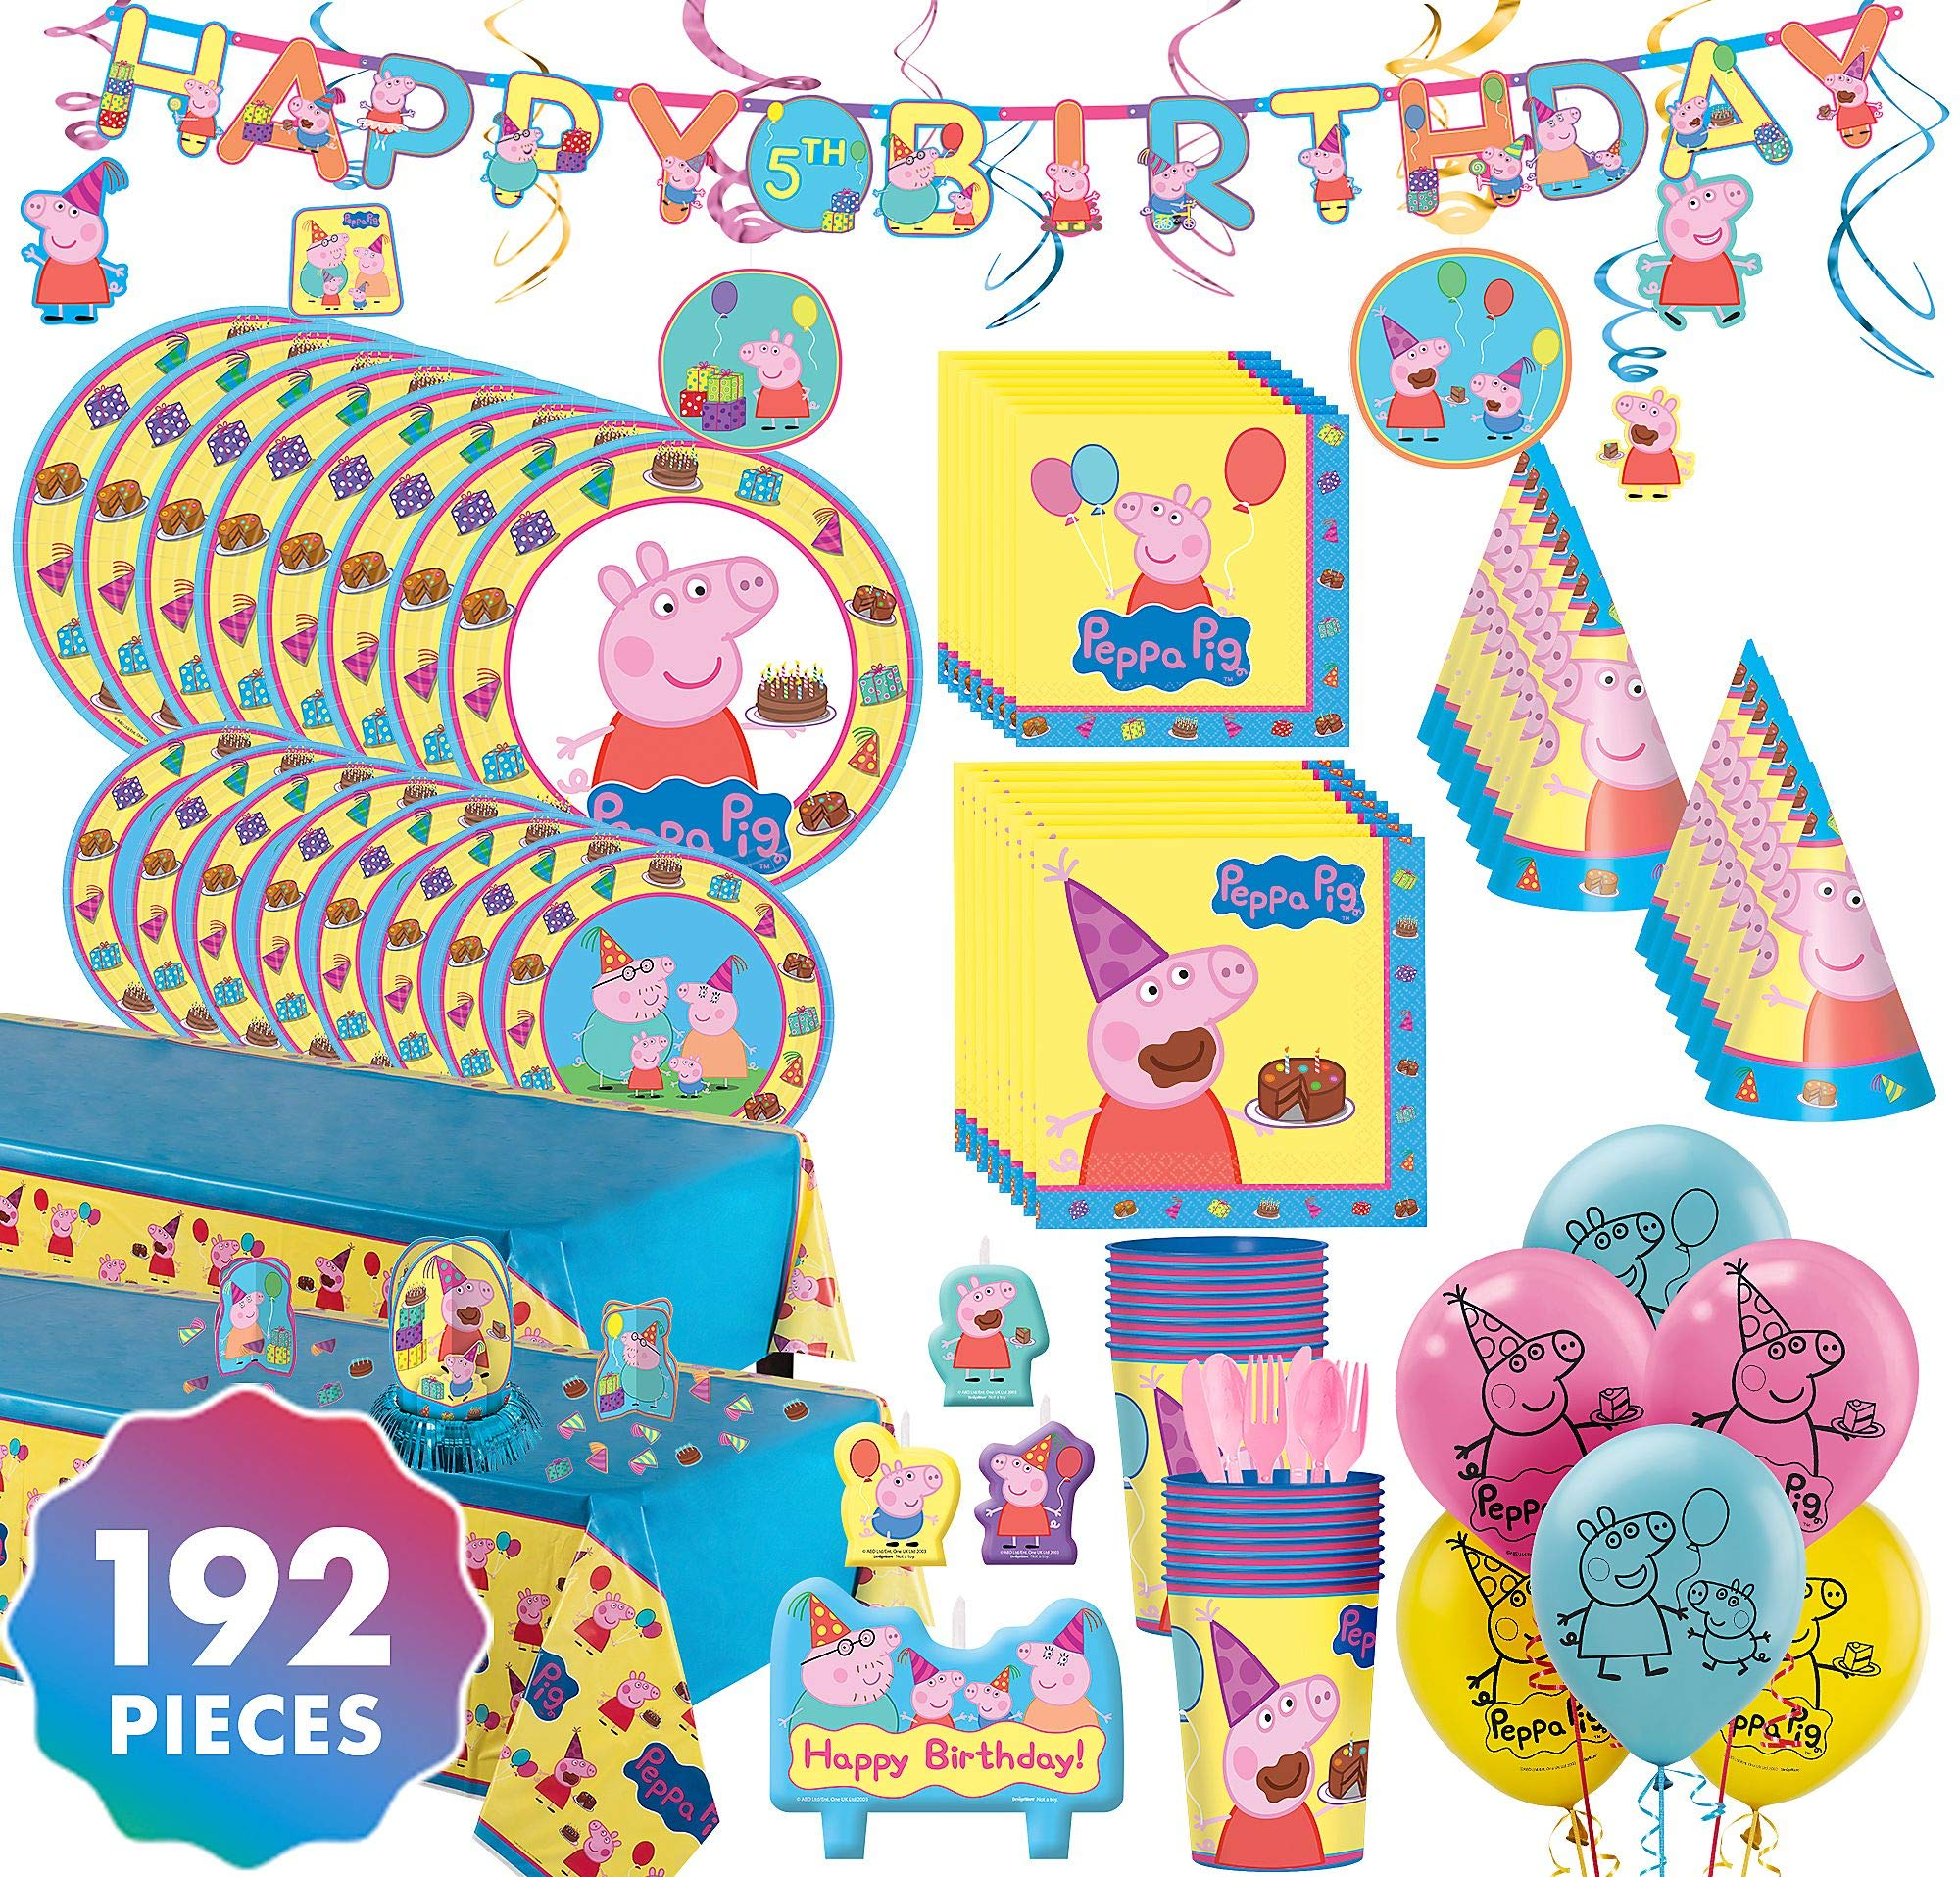 Party City Peppa Pig Ultimate Party Kit for 16 Guests, 192 Pieces, Includes Tableware, Decorations, Hats, and Balloons